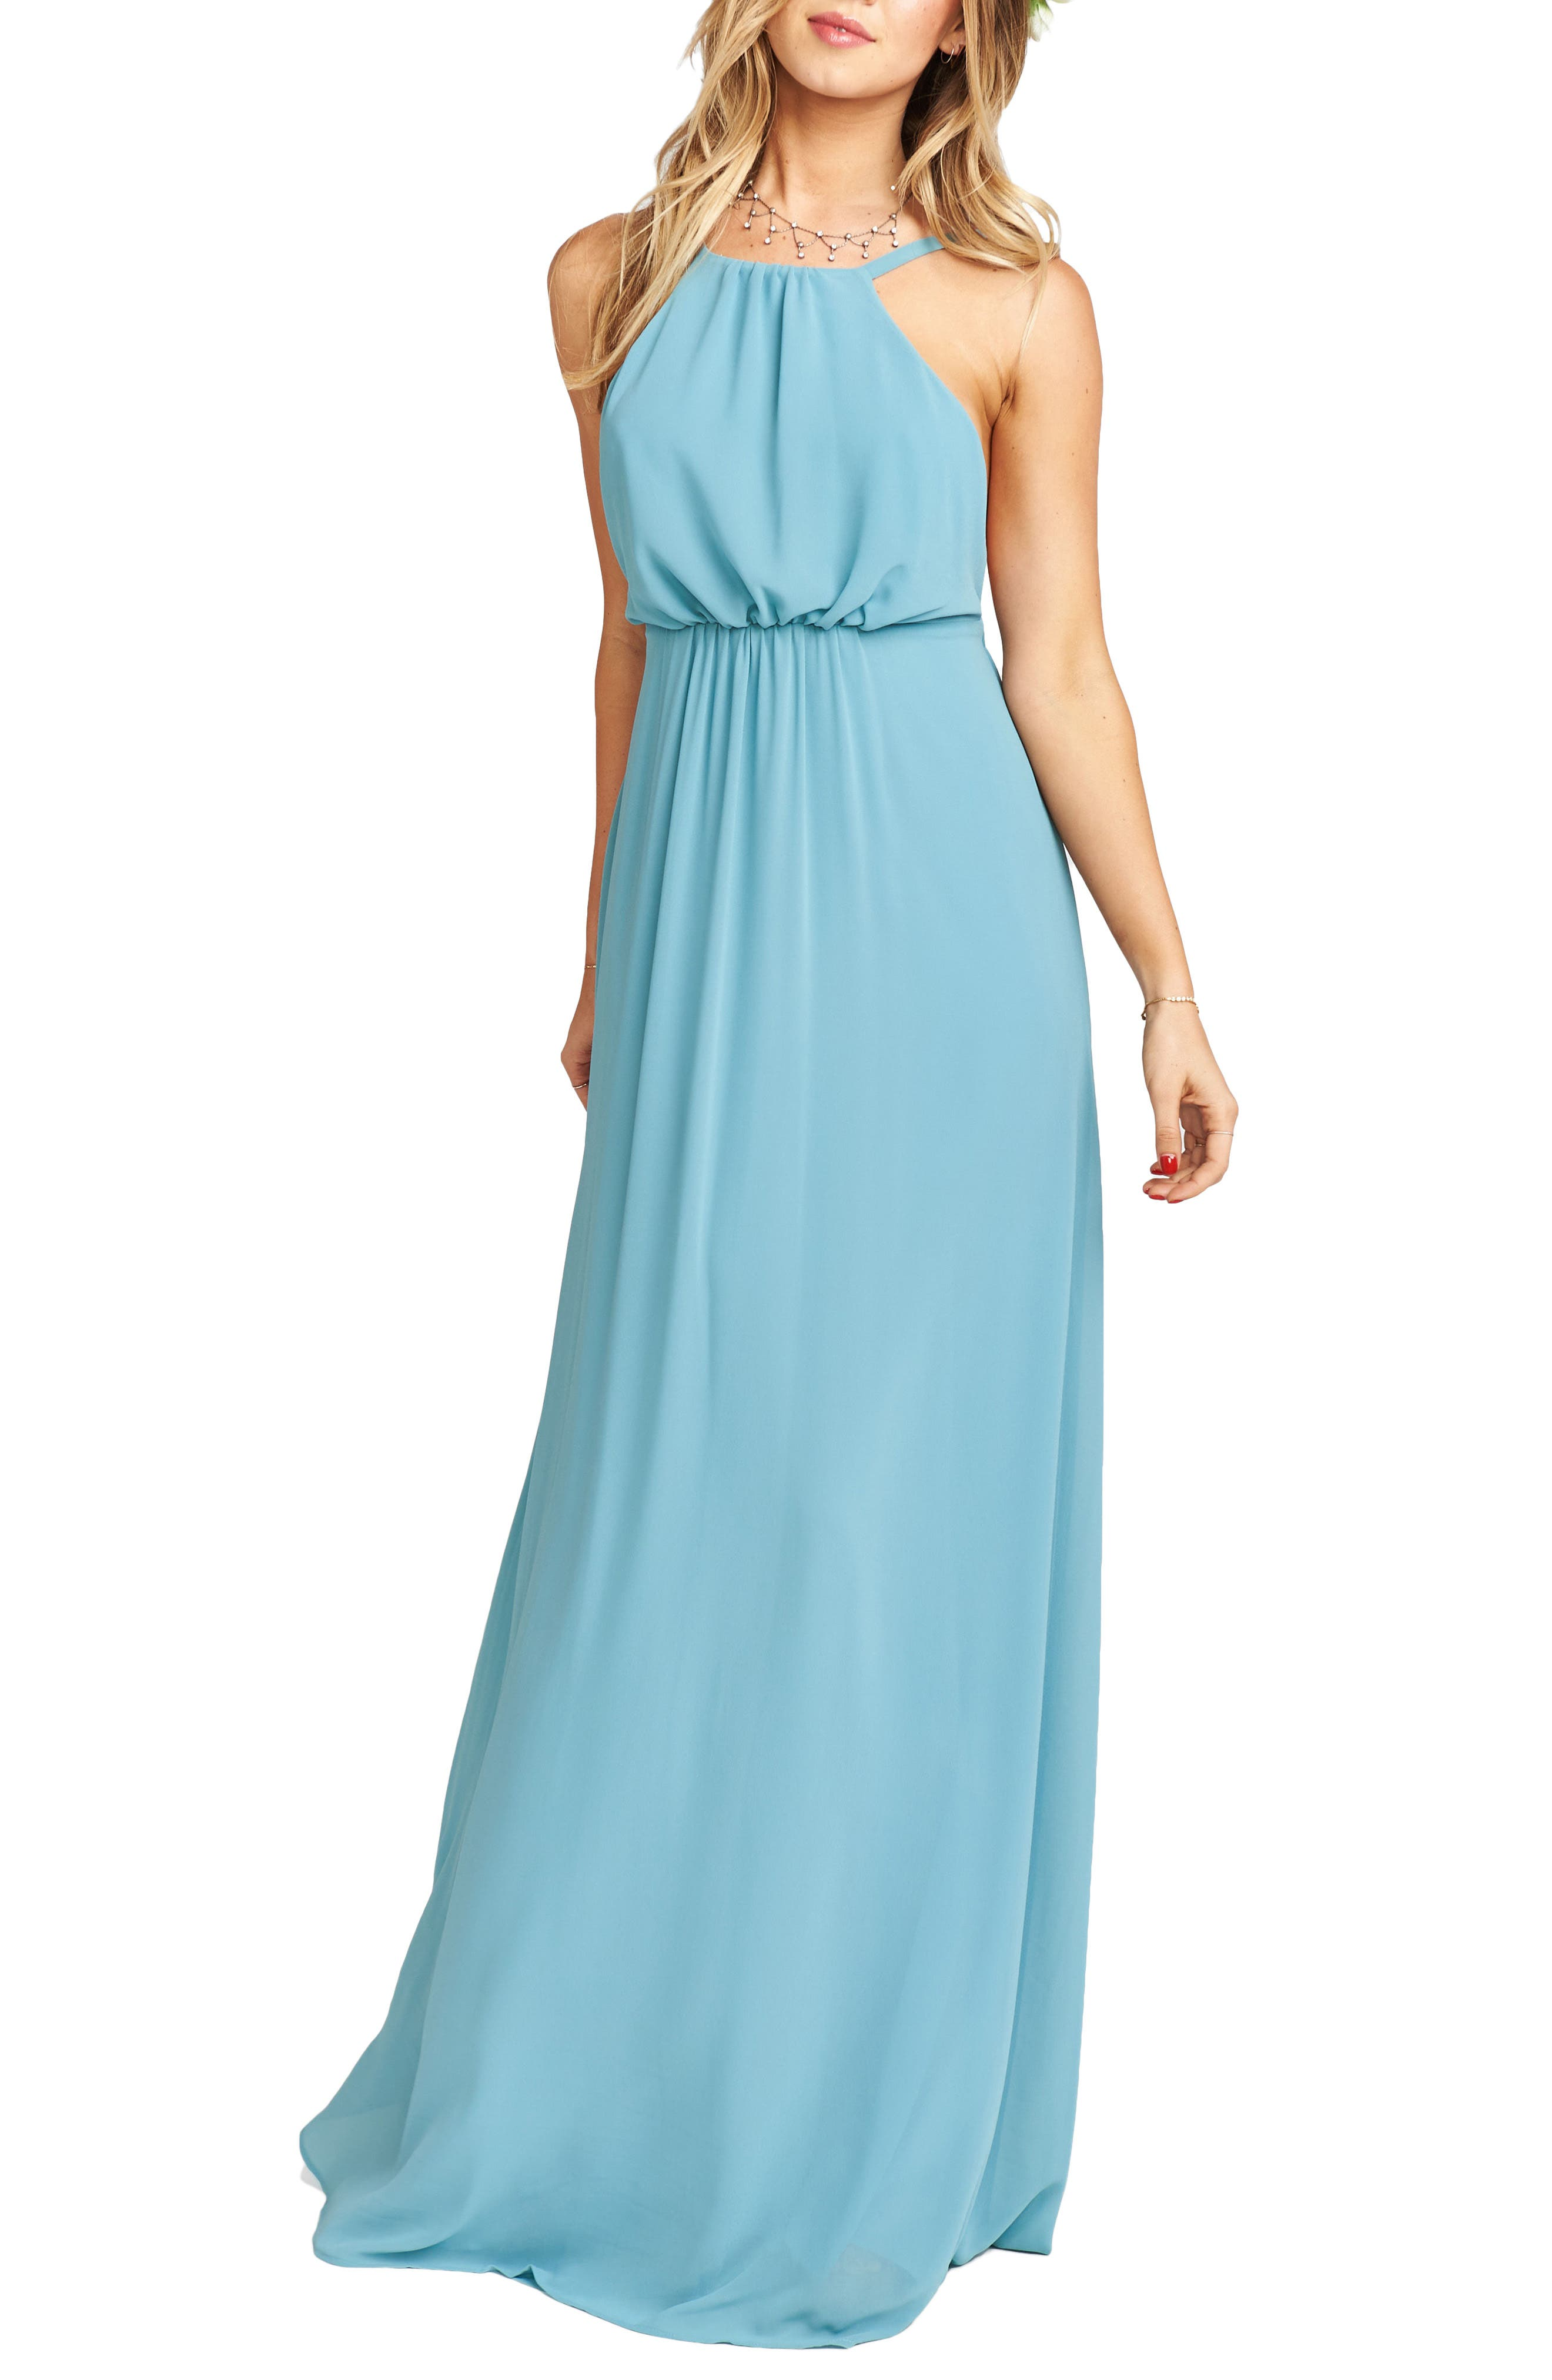 Amanda Open Back Blouson Gown,                             Main thumbnail 5, color,